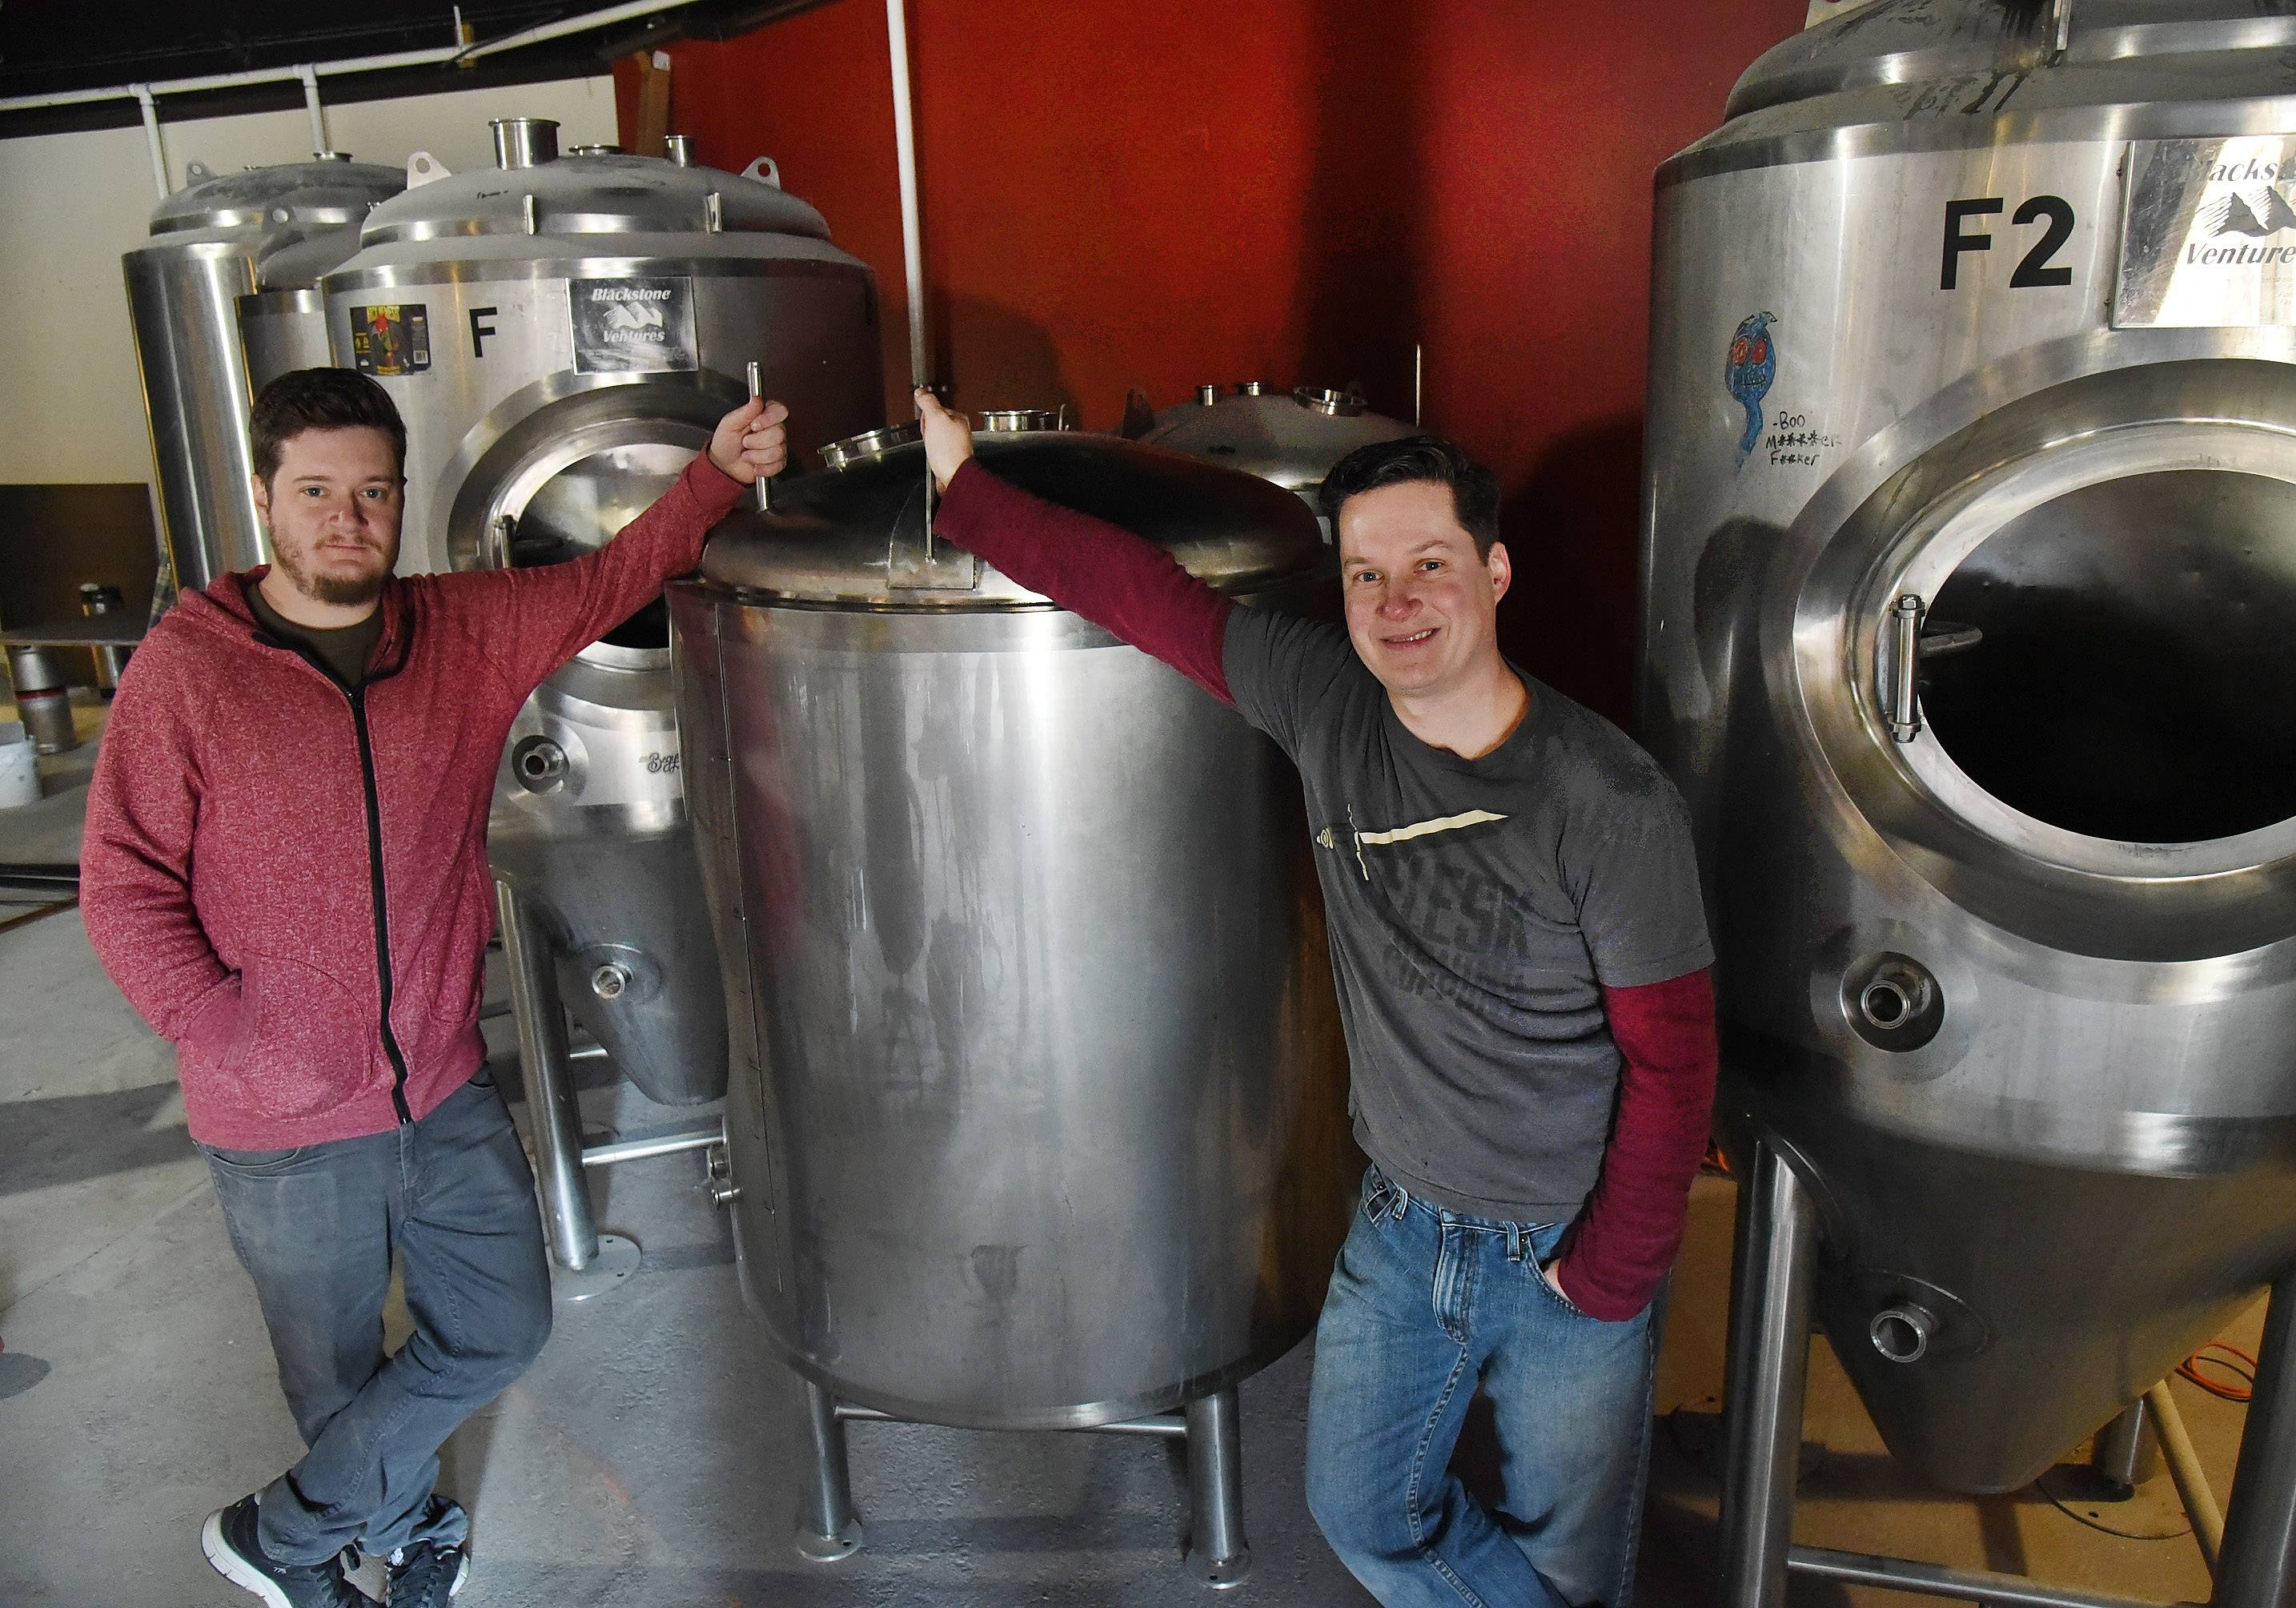 Bob Chwedyk/bchwedyk@dailyherald.comBrothers James, left, and Will O'Brien are expanding their business, Flesk Brewing, into Barrington.